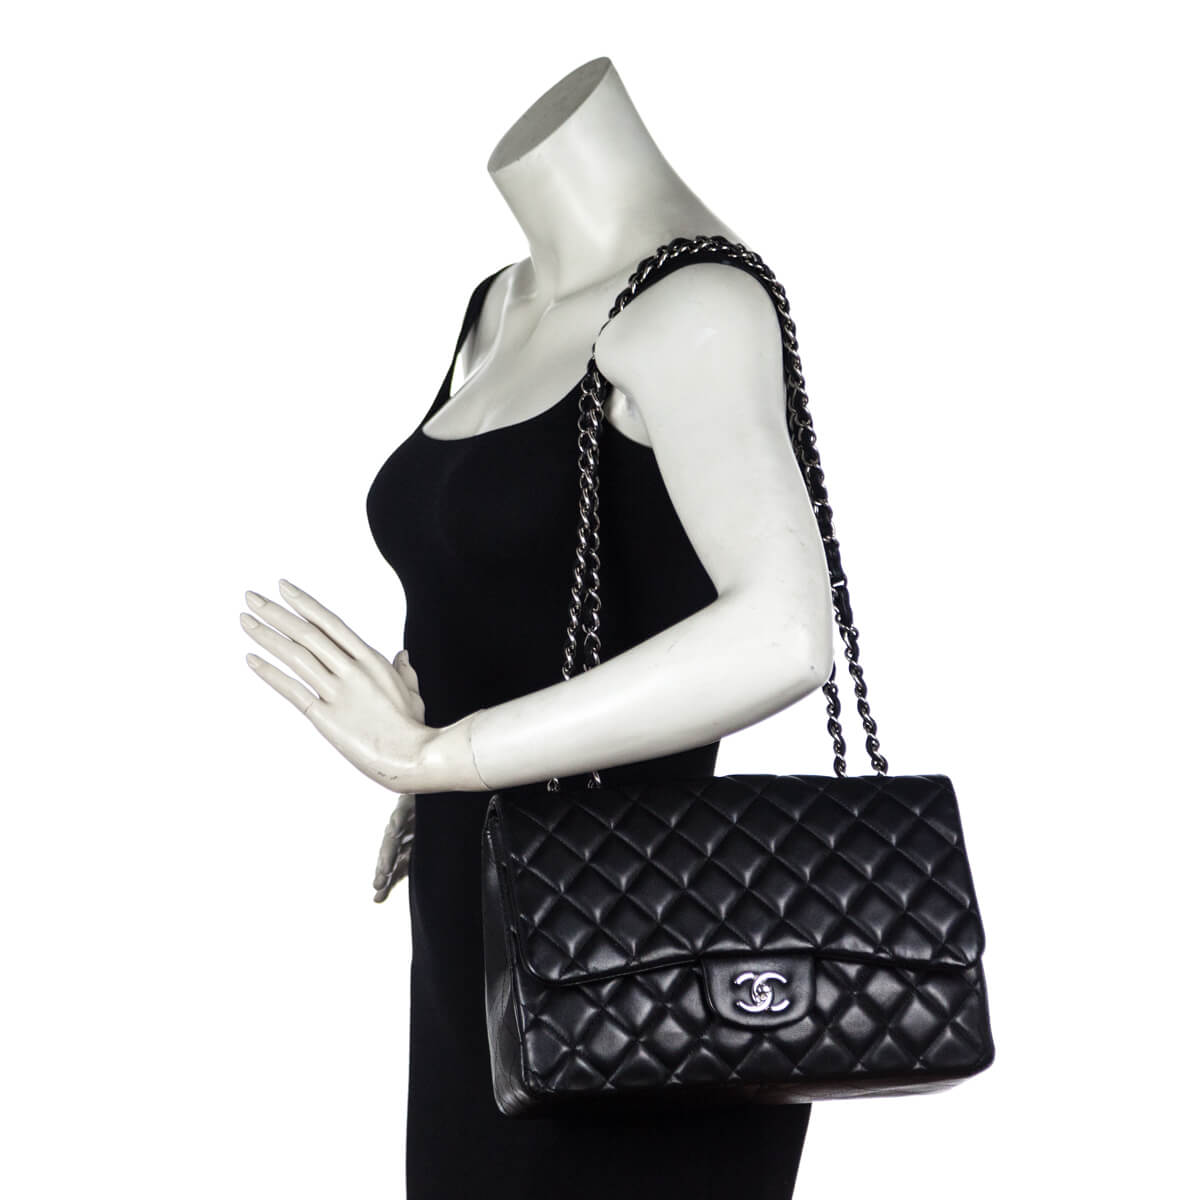 500388e446b4 ... Chanel Black Lambskin Jumbo Classic Single Flap Bag SHW - LOVE that BAG  - Preowned Authentic